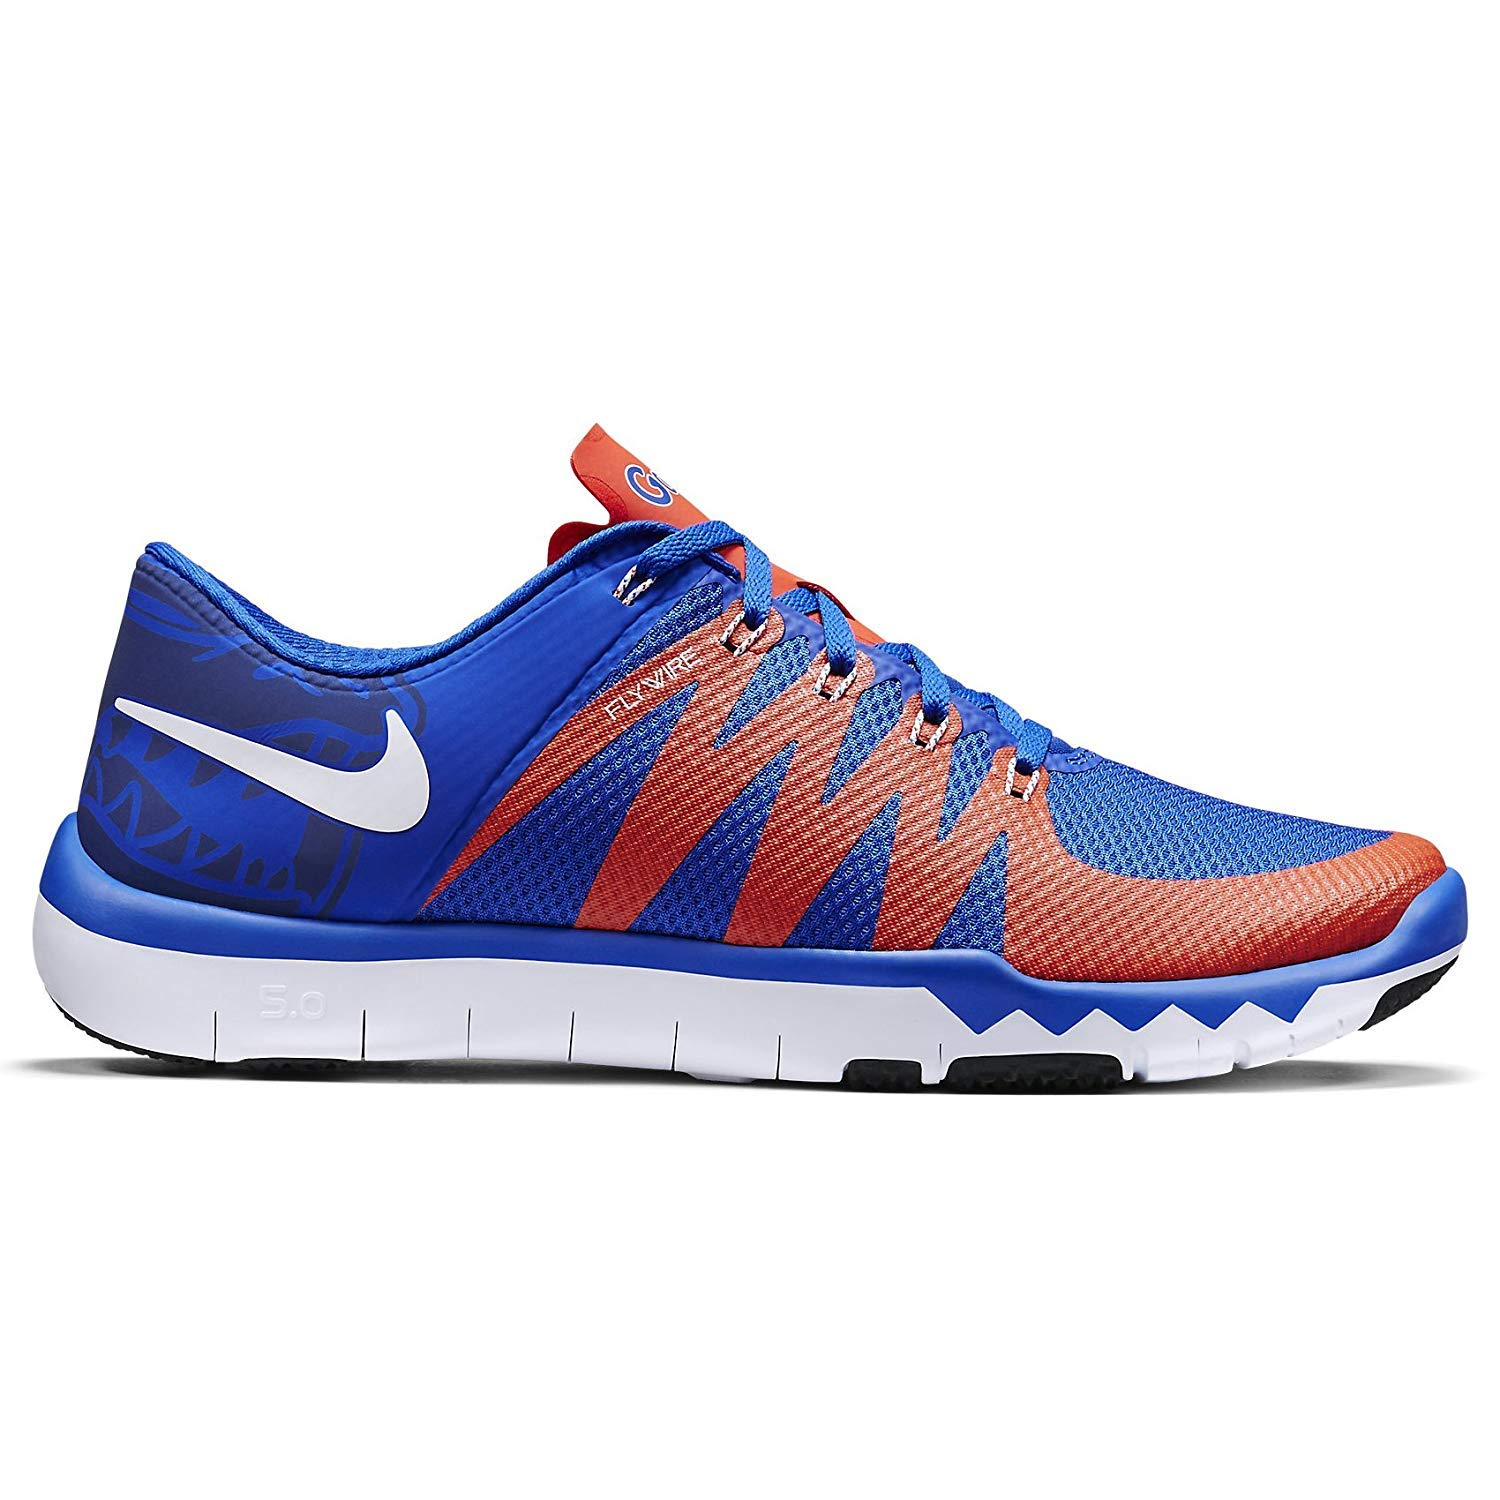 ff4c9ec24ad0 Nike Free Trainer 5.0 V6 AMP Florida Gators 723939-481 Royal Team Orange  Men s Shoes (Size 10.5)  Amazon.ca  Shoes   Handbags